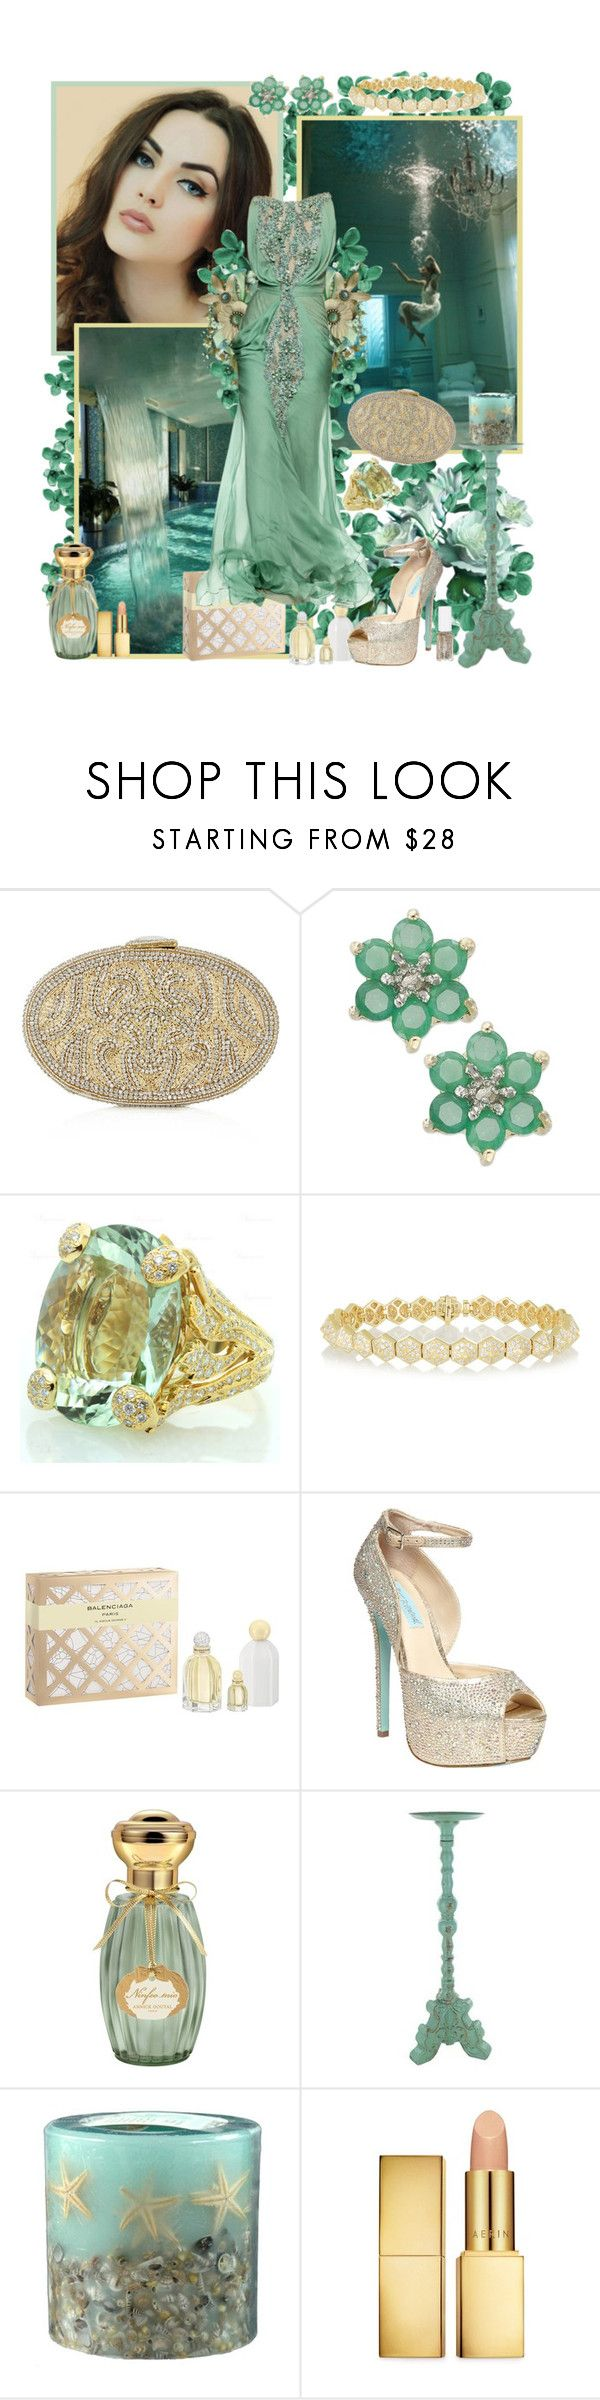 """Aqua by Satinee"" by cupcakecouturegirls ❤ liked on Polyvore featuring Topshop, Victoria Townsend, Christian Dior, Anita Ko, Balenciaga, Tony Ward, Betsey Johnson, Annick Goutal, Rosy Rings and AERIN"